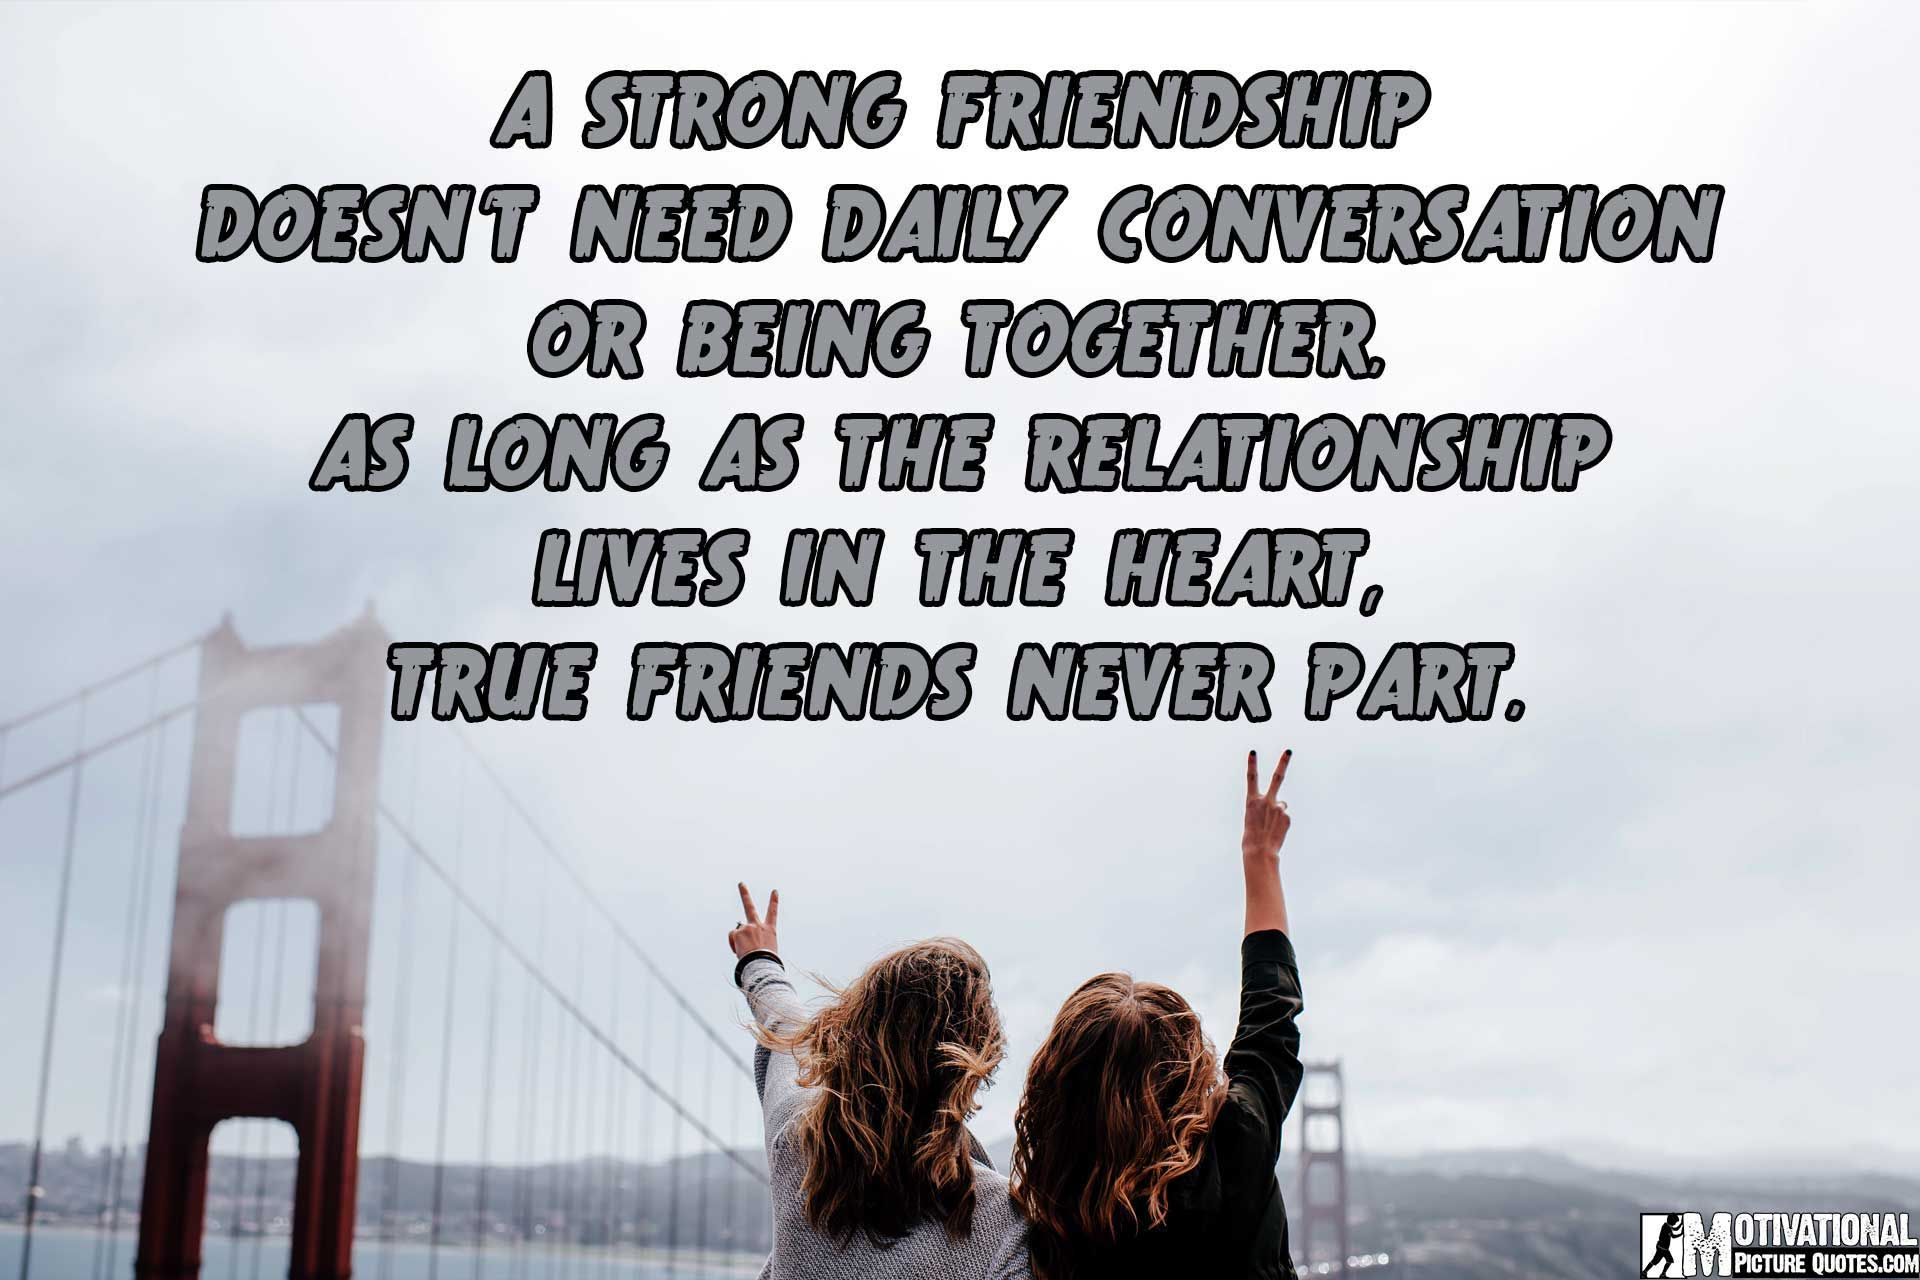 Quotes About Friendship With Images Image Result For Friendship Quotes  Best Friends  Pinterest